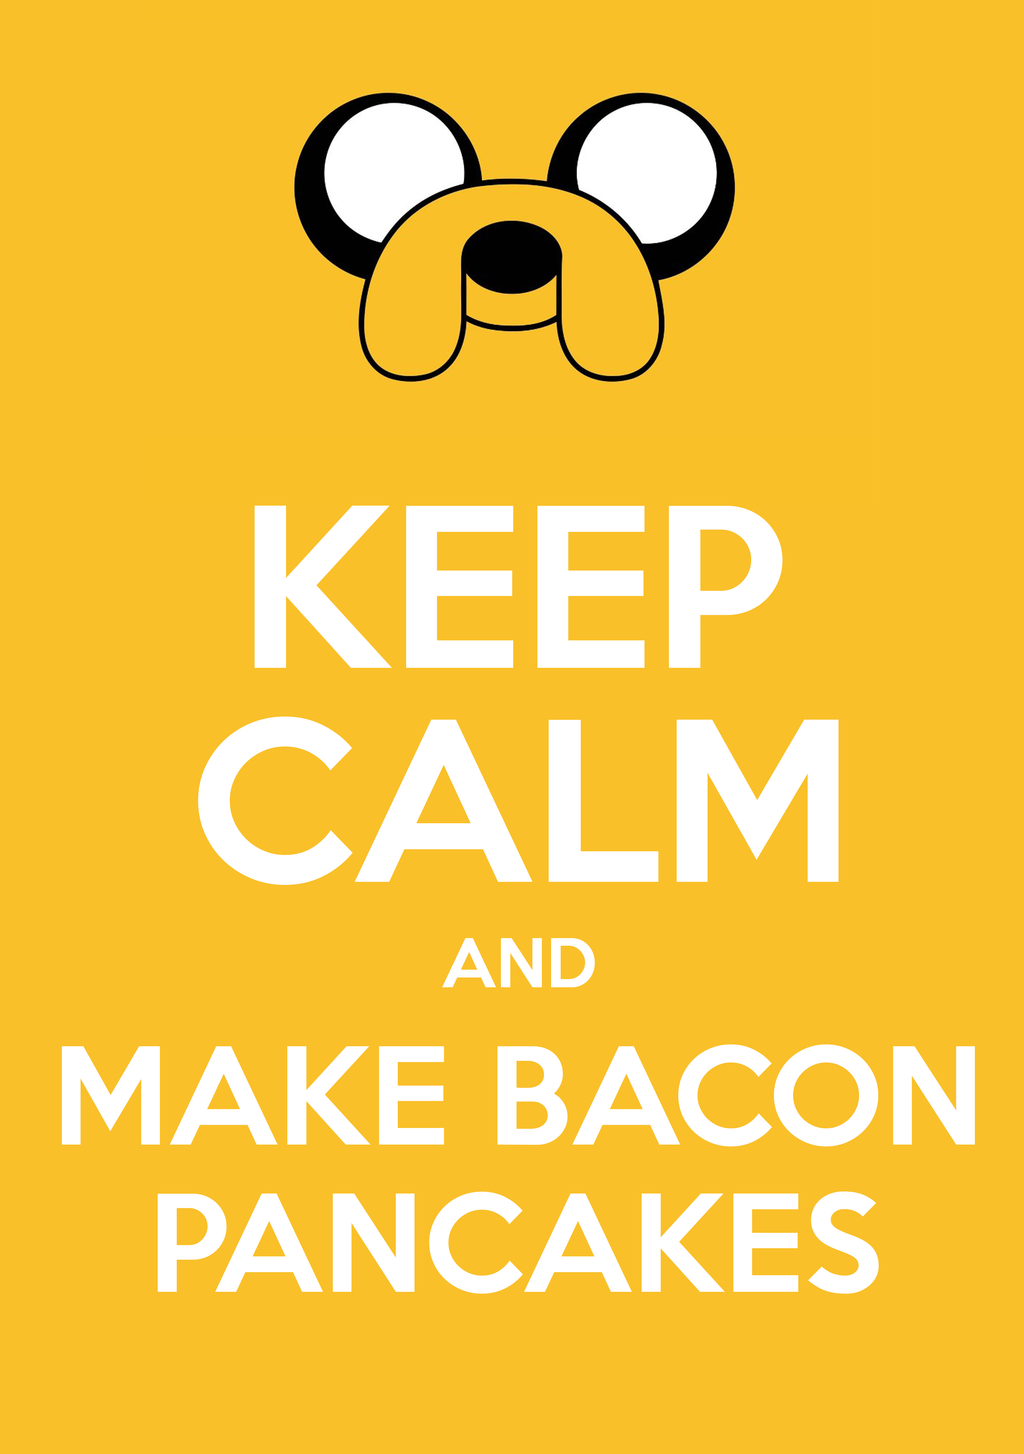 Keep calm and make bacon pancakes